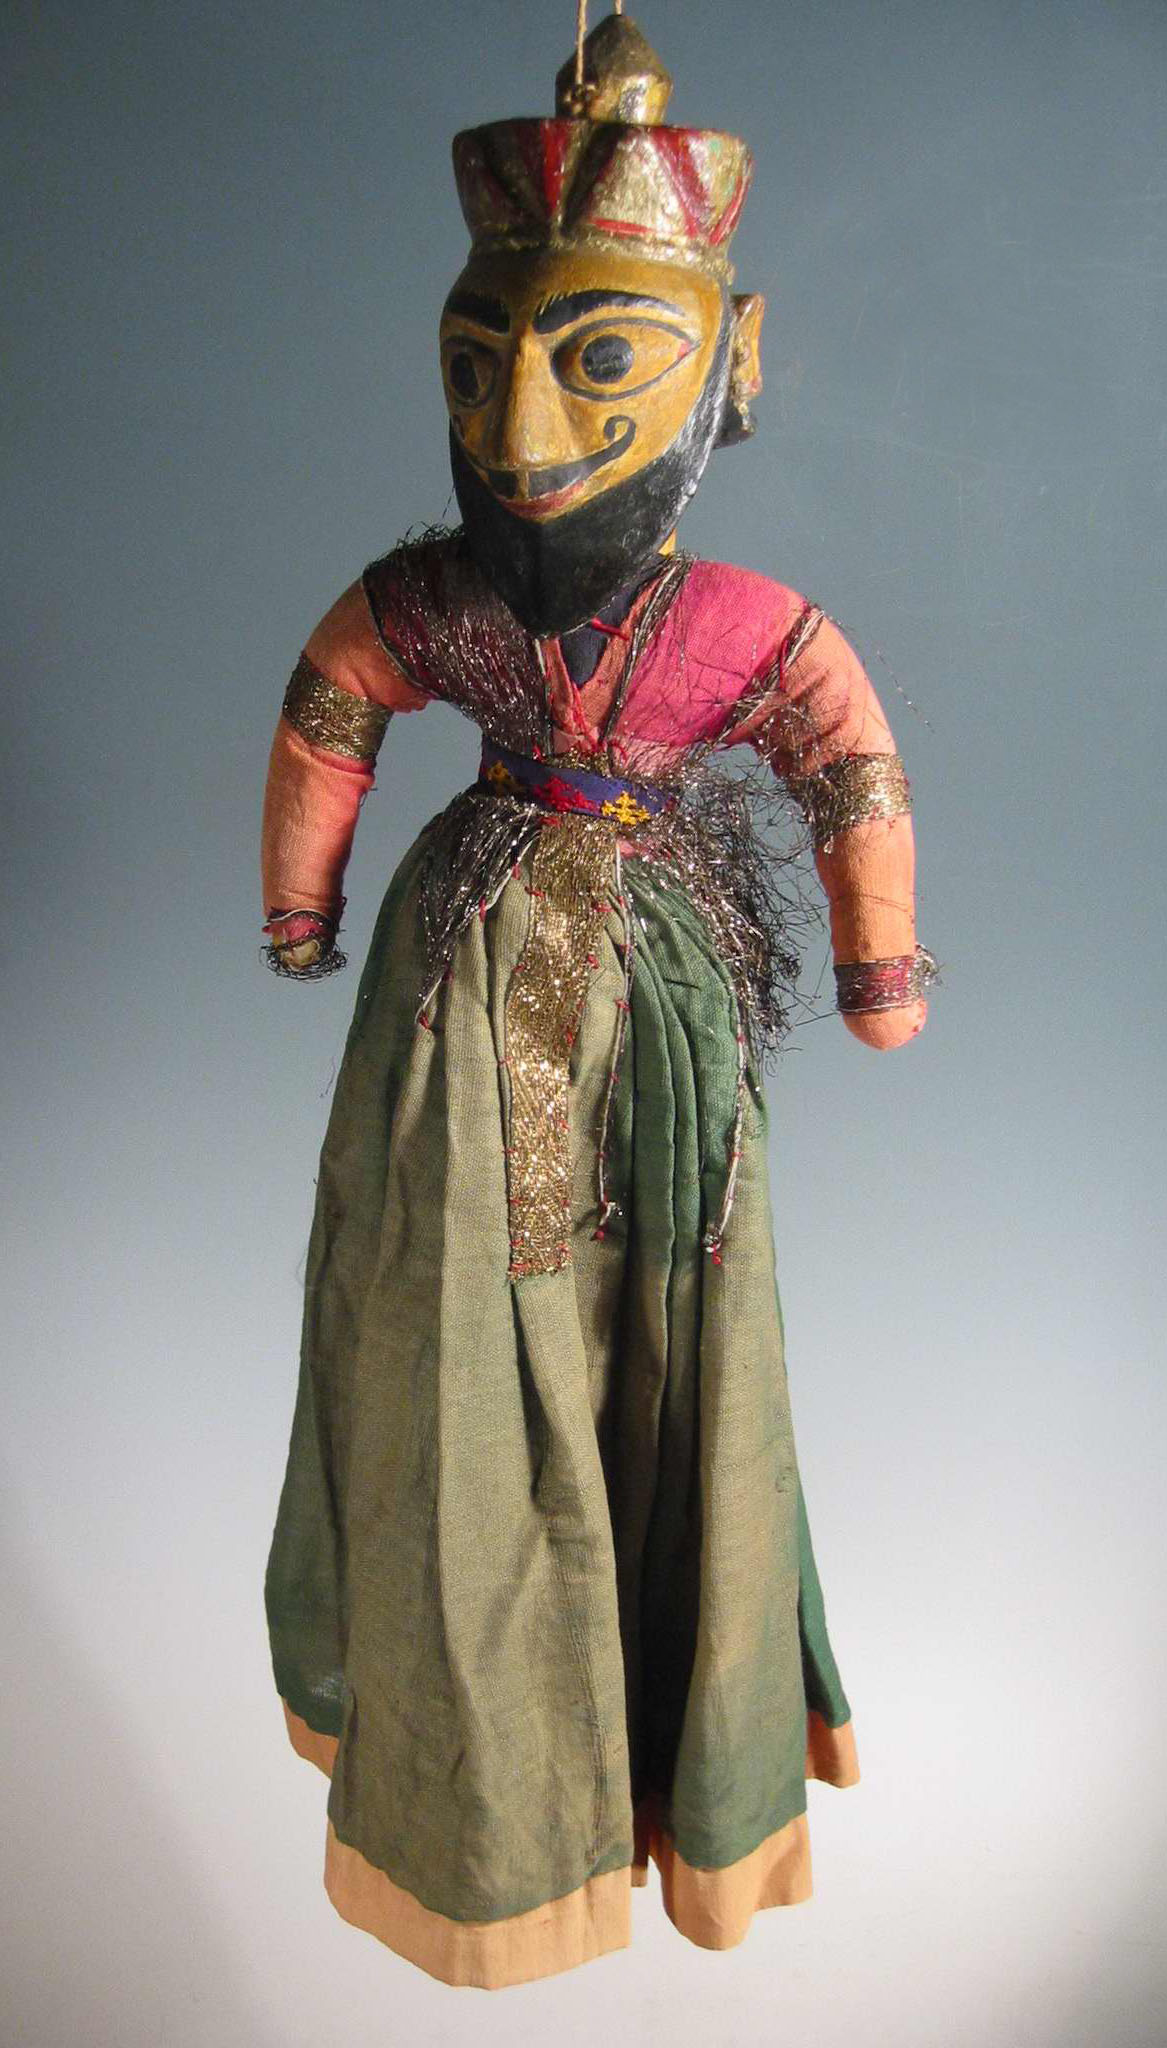 Un guerrier-<em>c</em>ourtisan moghol, une marionnette à fils, <em>kathputli</em>, du Rajasthan, en Inde, hauteur : 60 <em>c</em>m. Colle<em>c</em>tion : Center for Puppetry Arts (Atlanta, Géorgie, États-Unis). Photo réproduite avec l'aimable autorisation de Center for Puppetry Arts